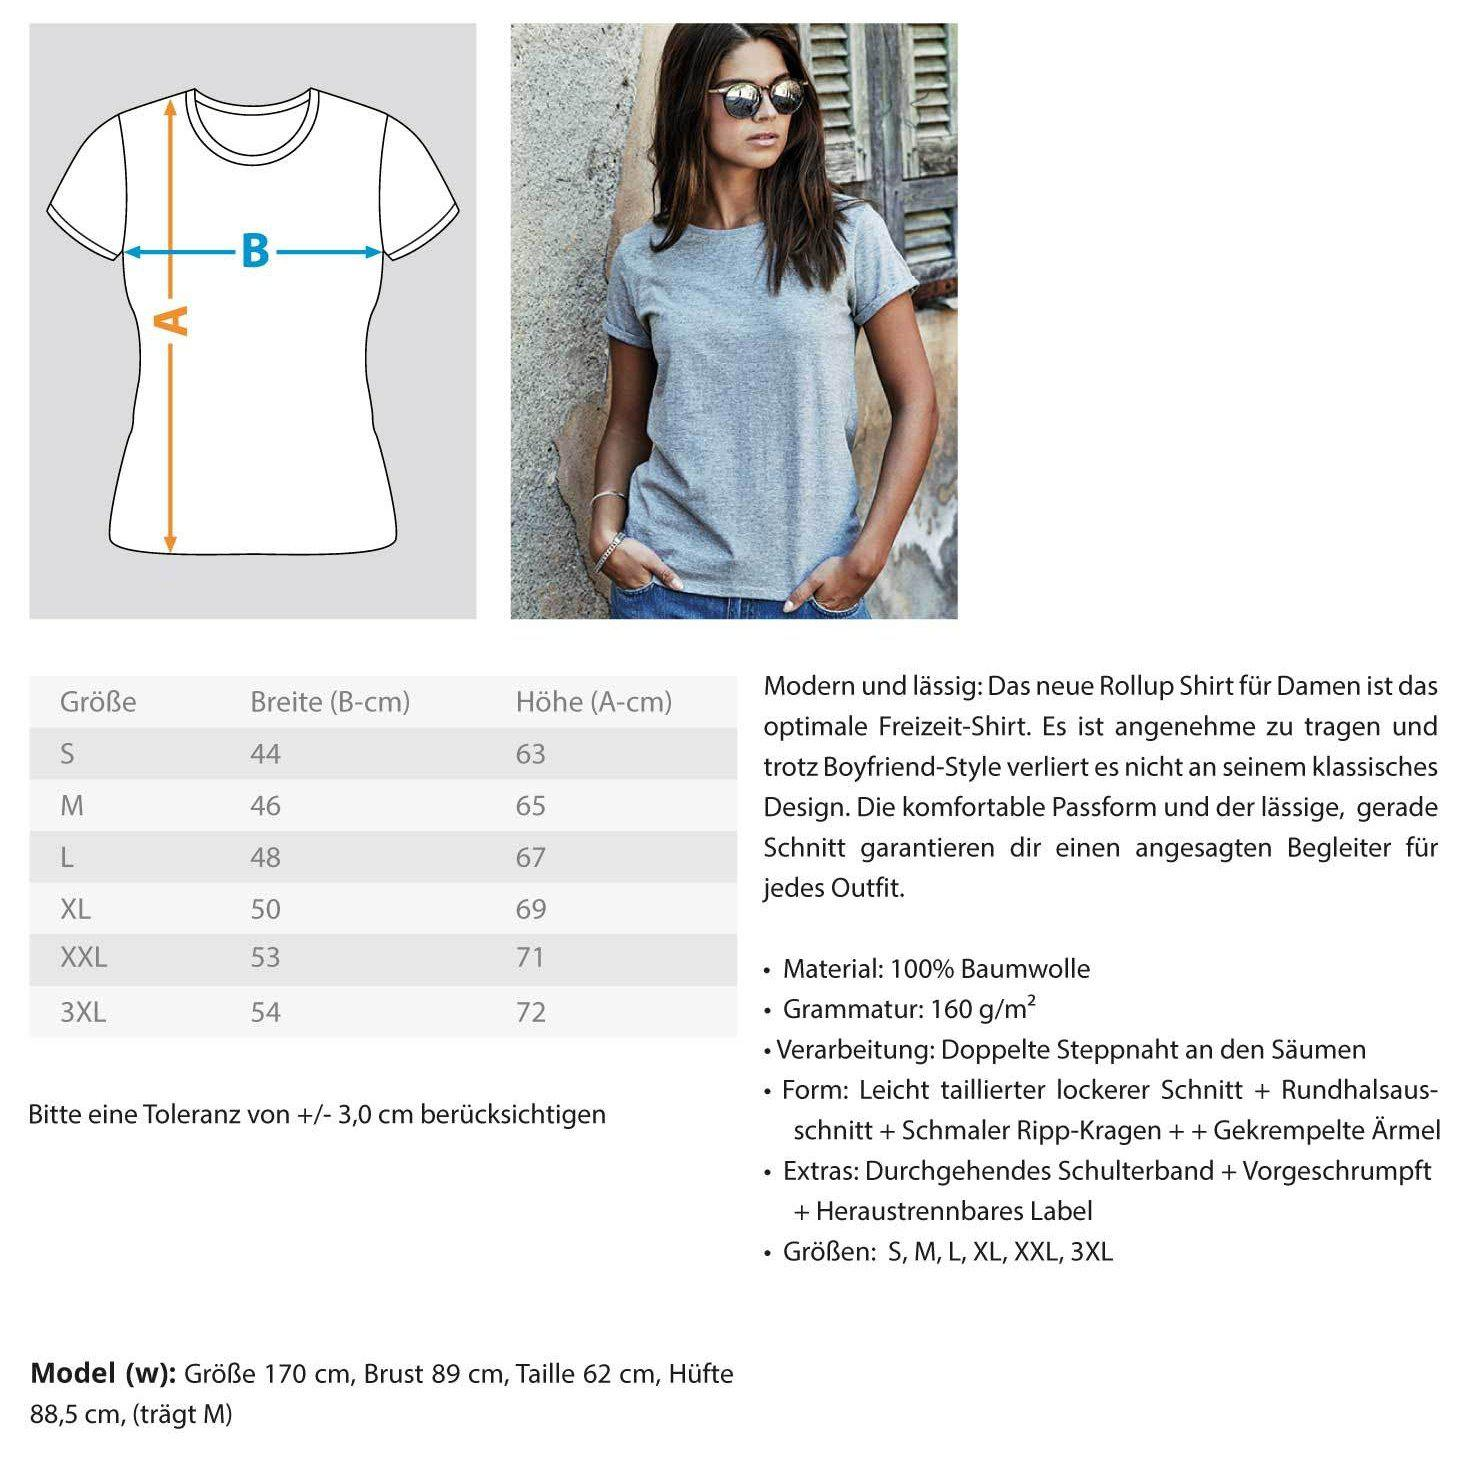 Made with TECHNO - Rave On!® - Damen RollUp Shirt Women Rollup Shirt - Rave On!® der Club & Techno Szene Shop für Coole Junge Mode Streetwear Style & Fashion Outfits + Sexy Festival 420 Stuff